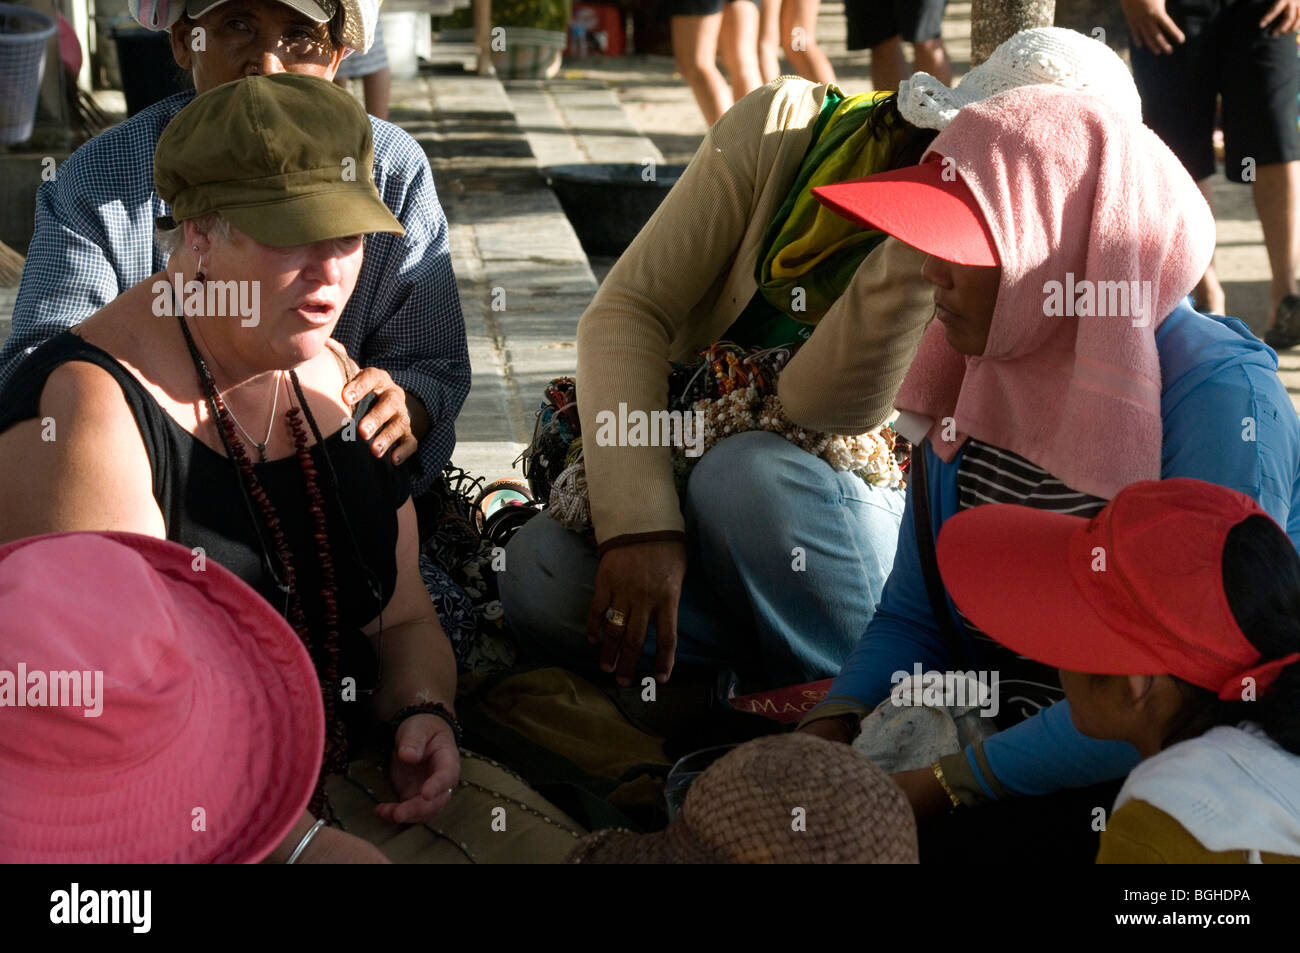 Woman tourist targetted by hawkers and masseurs, Kuta Beach, Bali, Indonesia Stock Photo